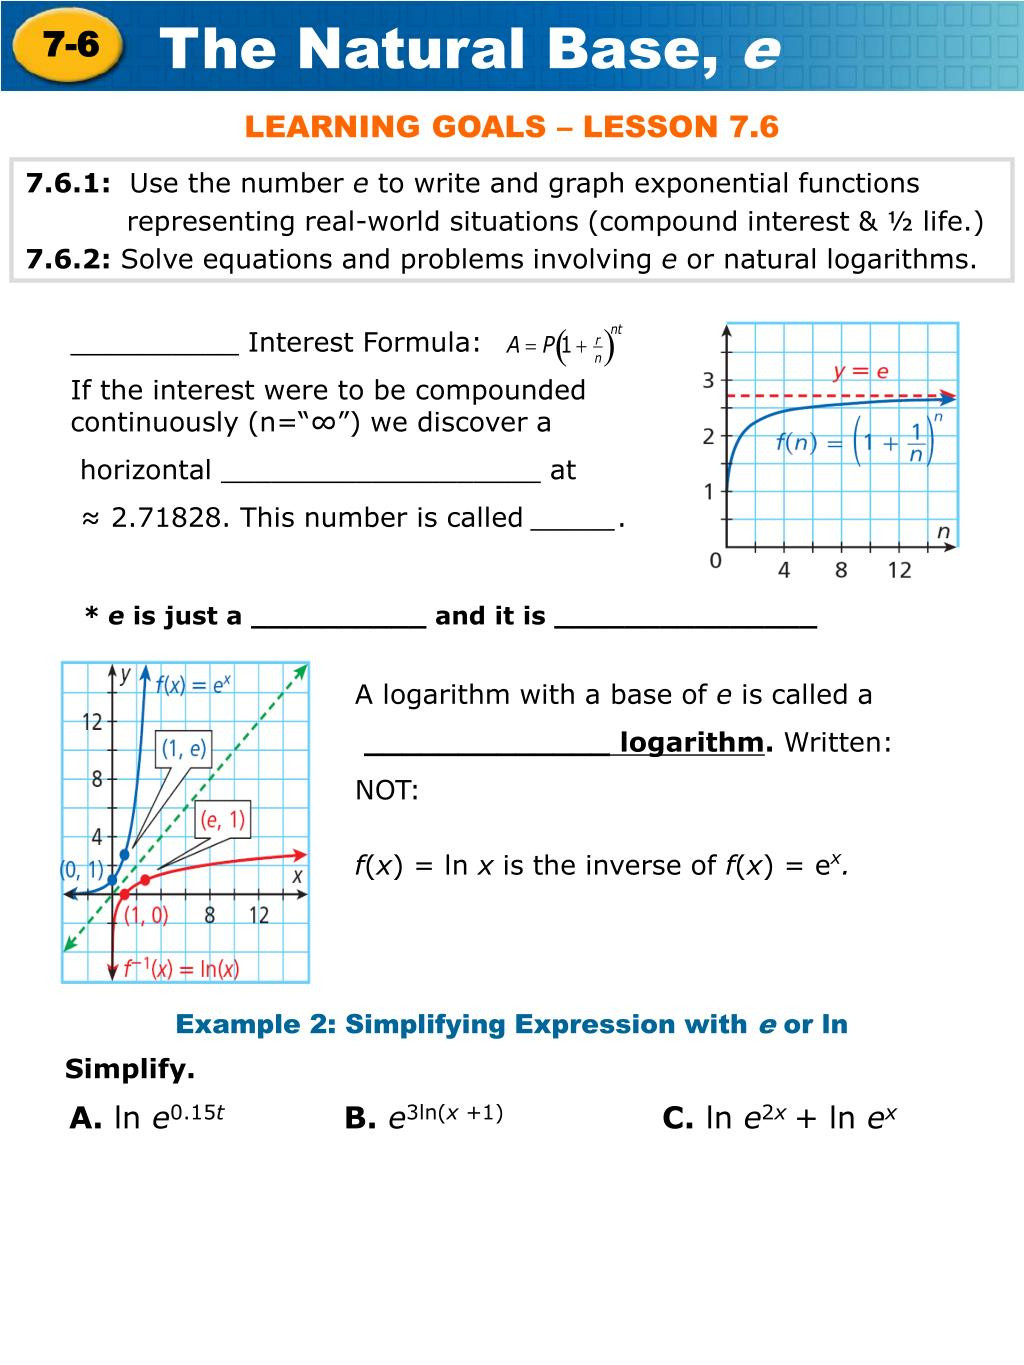 Graphing Exponential Functions Worksheet Answers Ppt 7 6 1 Use the Number E to Write and Graph Exponential